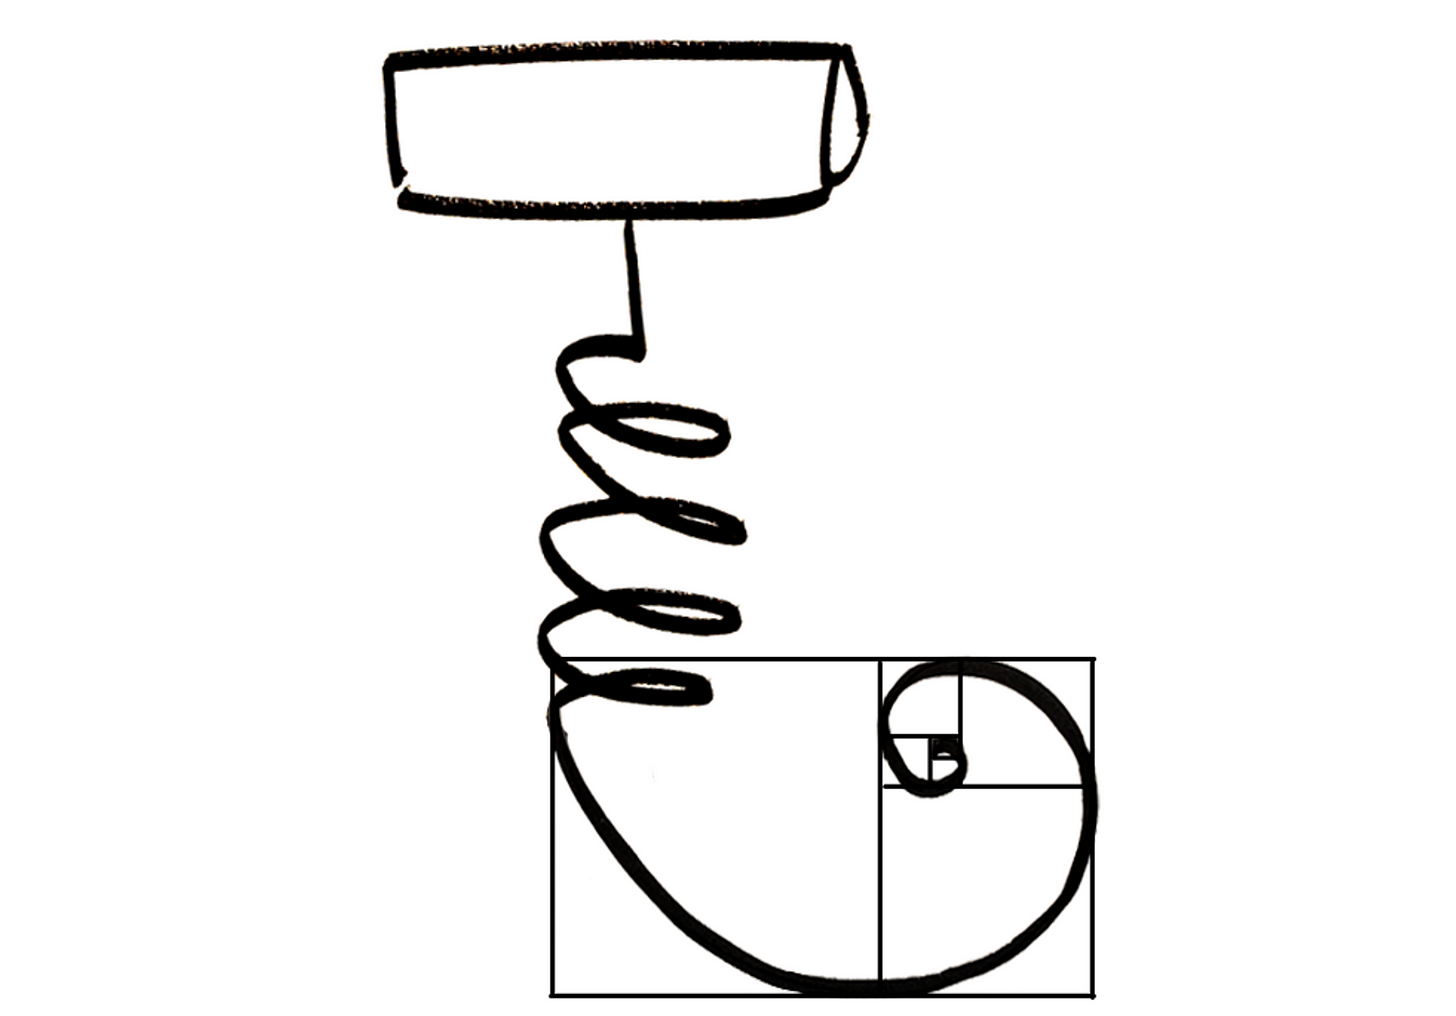 A corkscrew with a worm that curves like the golden ratio